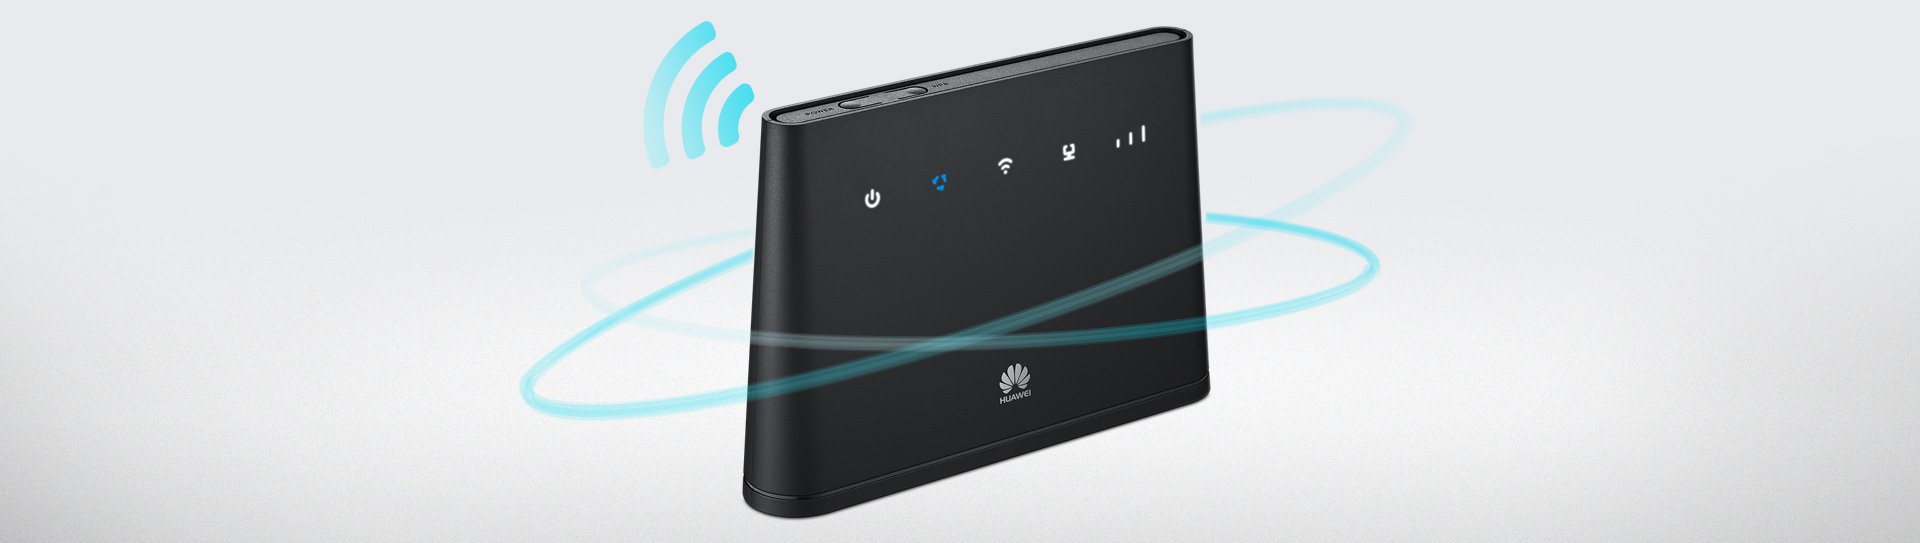 HUAWEI 4G Router B310, LTE CPE B310, wireless gateway 4G LTE SIM